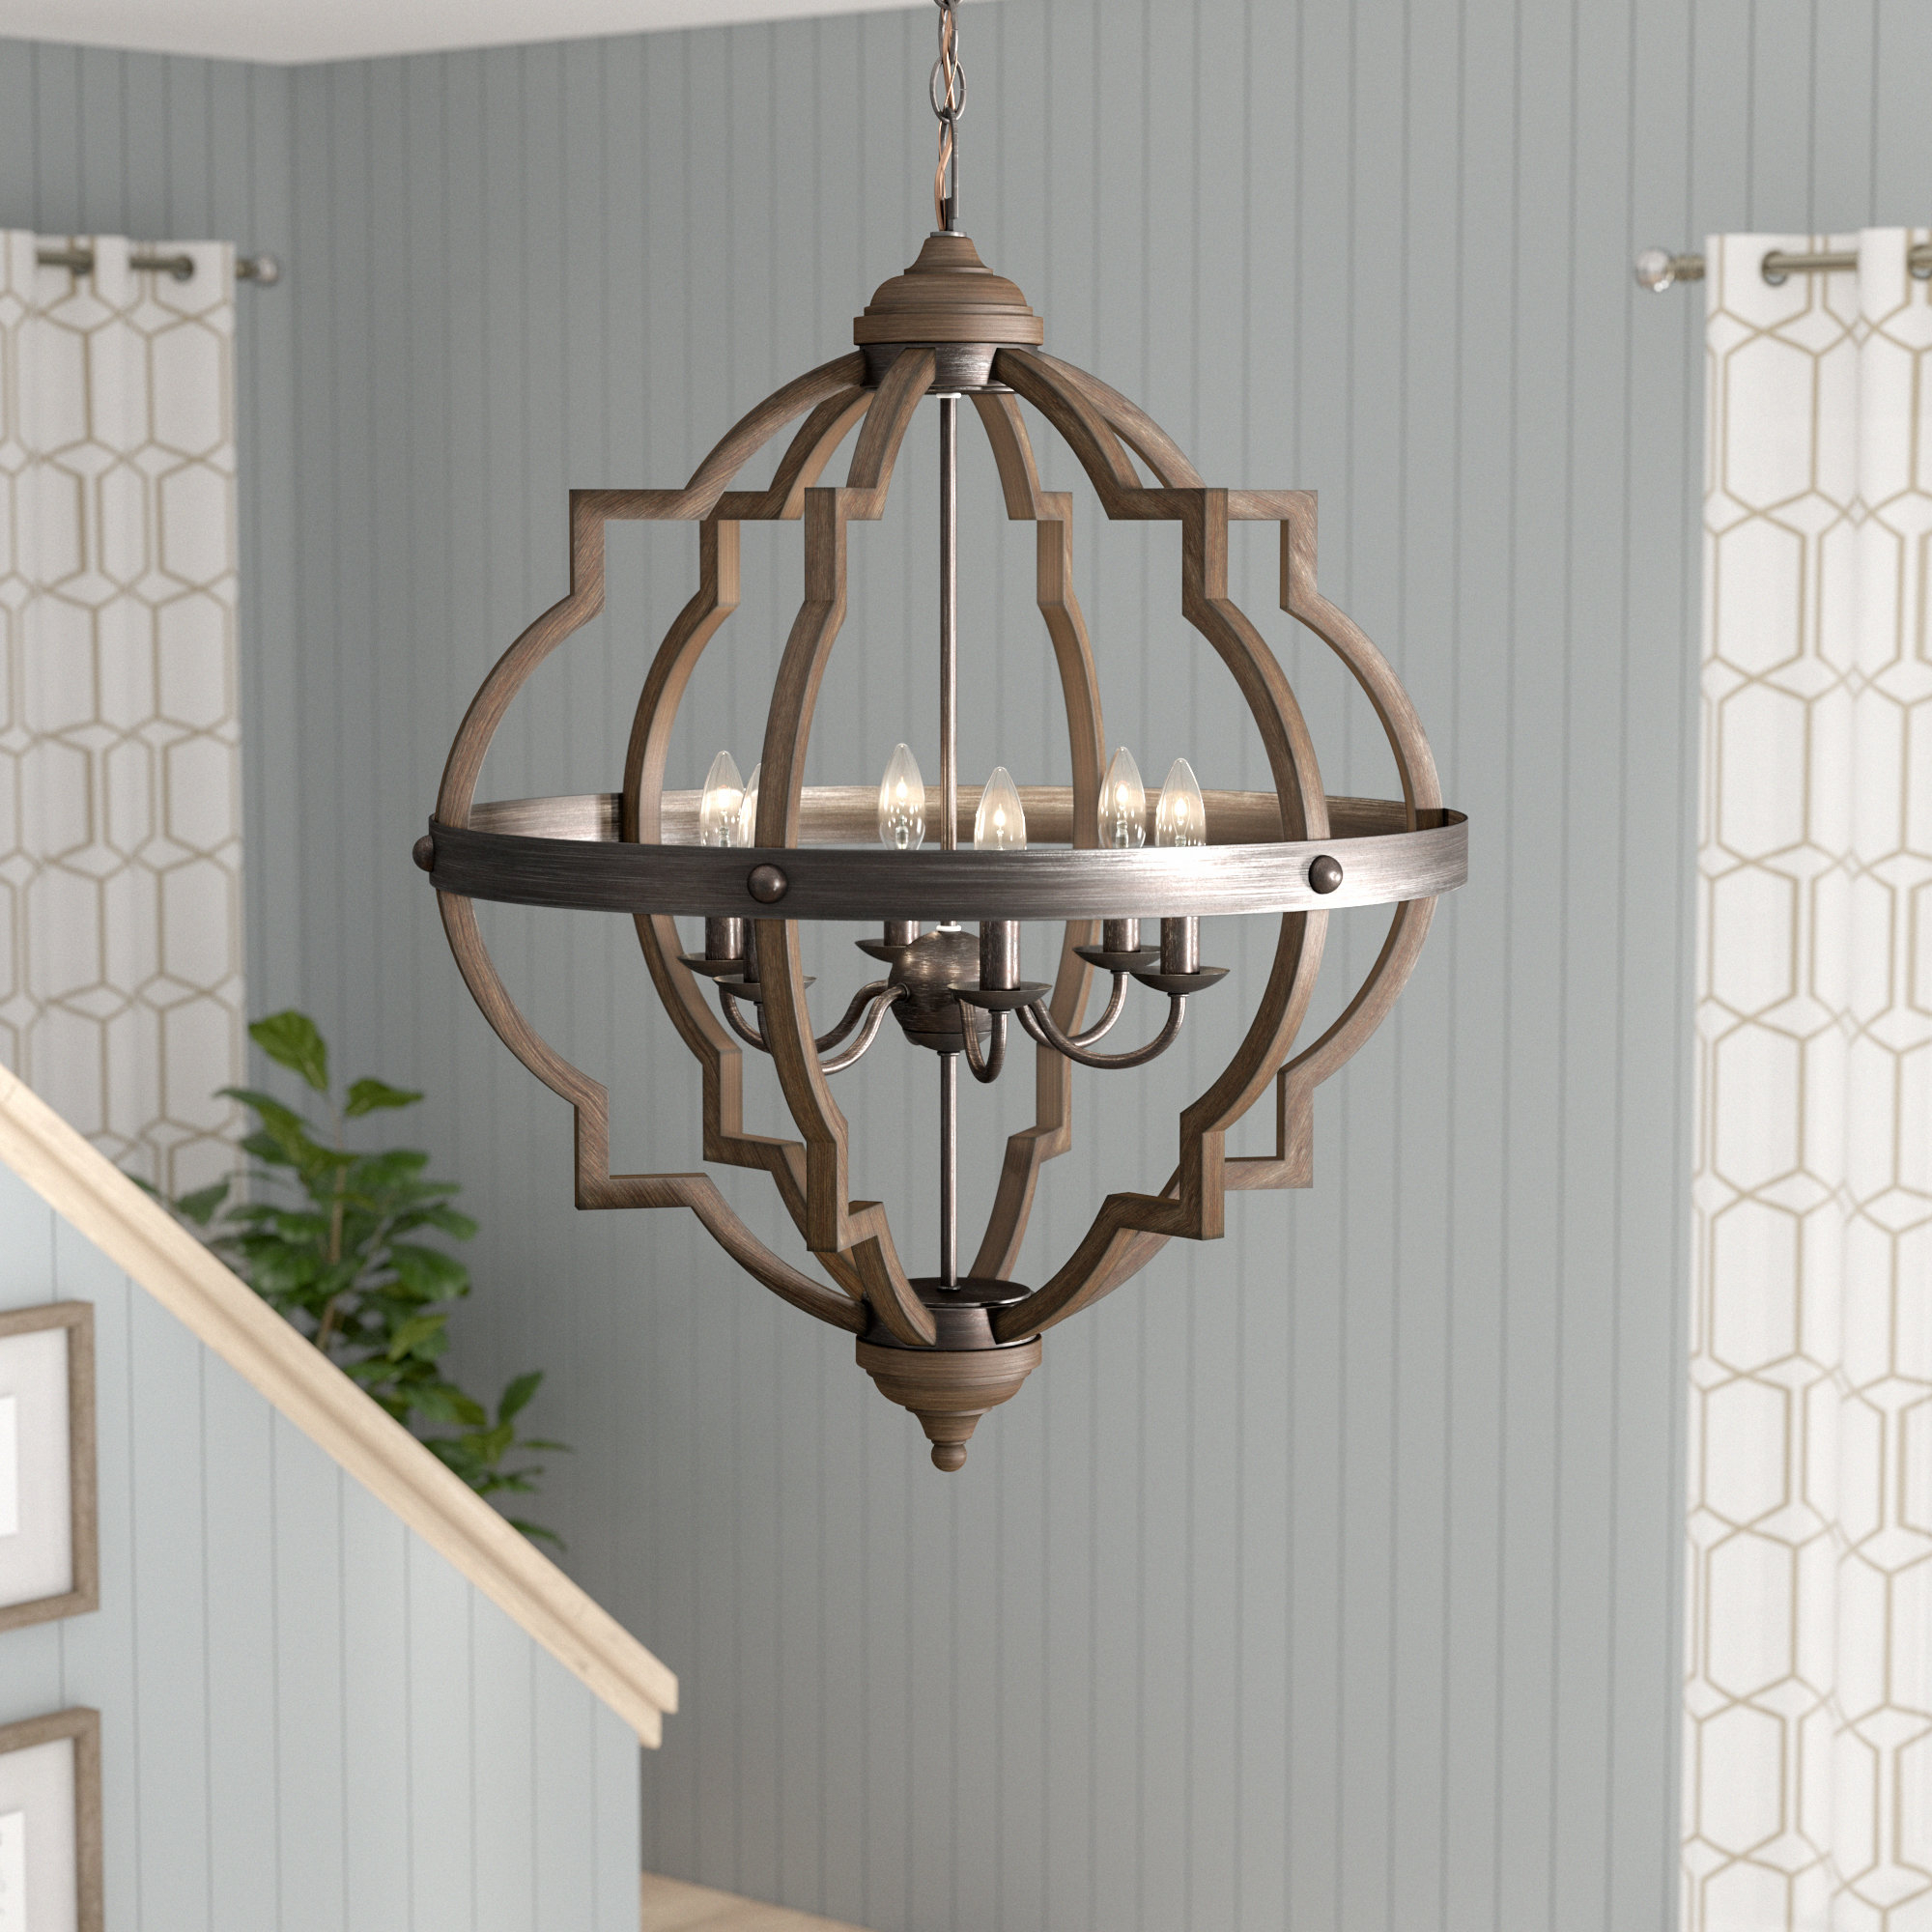 2020 Kaycee 4 Light Geometric Chandeliers Intended For Bennington 6 Light Candle Style Chandelier (View 24 of 25)